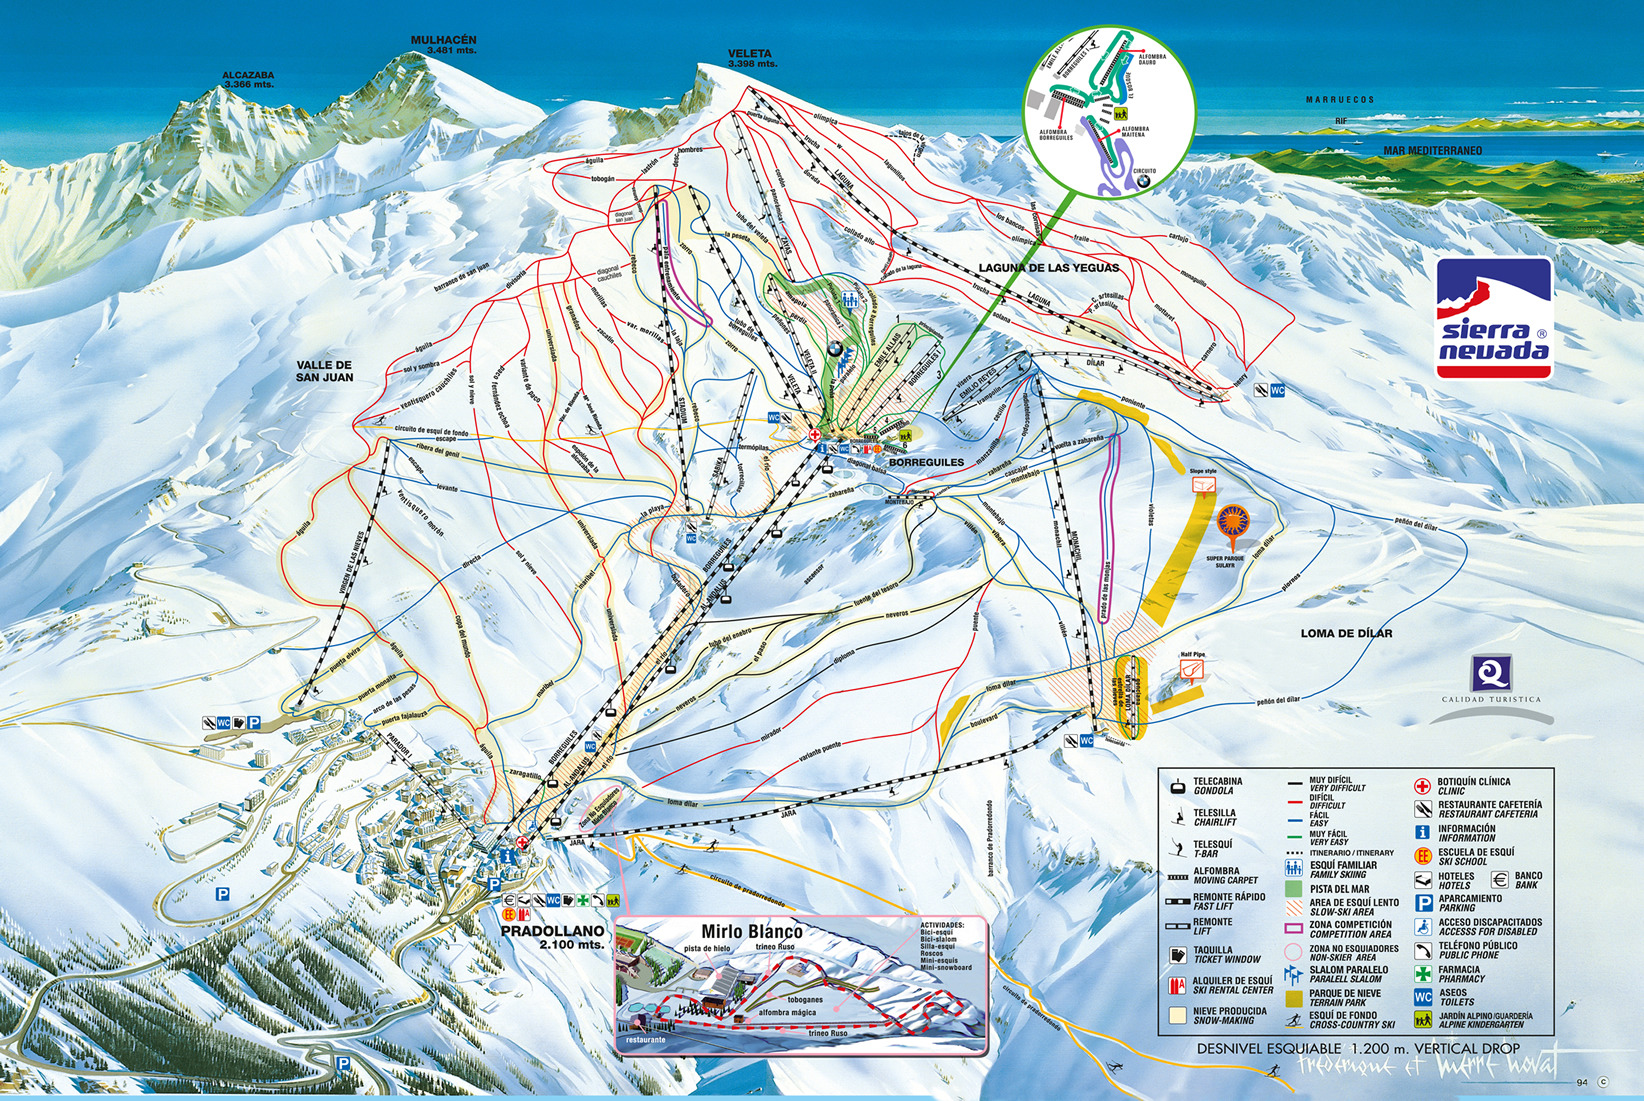 Sierra Nevada Piste Map Sierra Nevada Piste Map | Plan of ski slopes and lifts | OnTheSnow